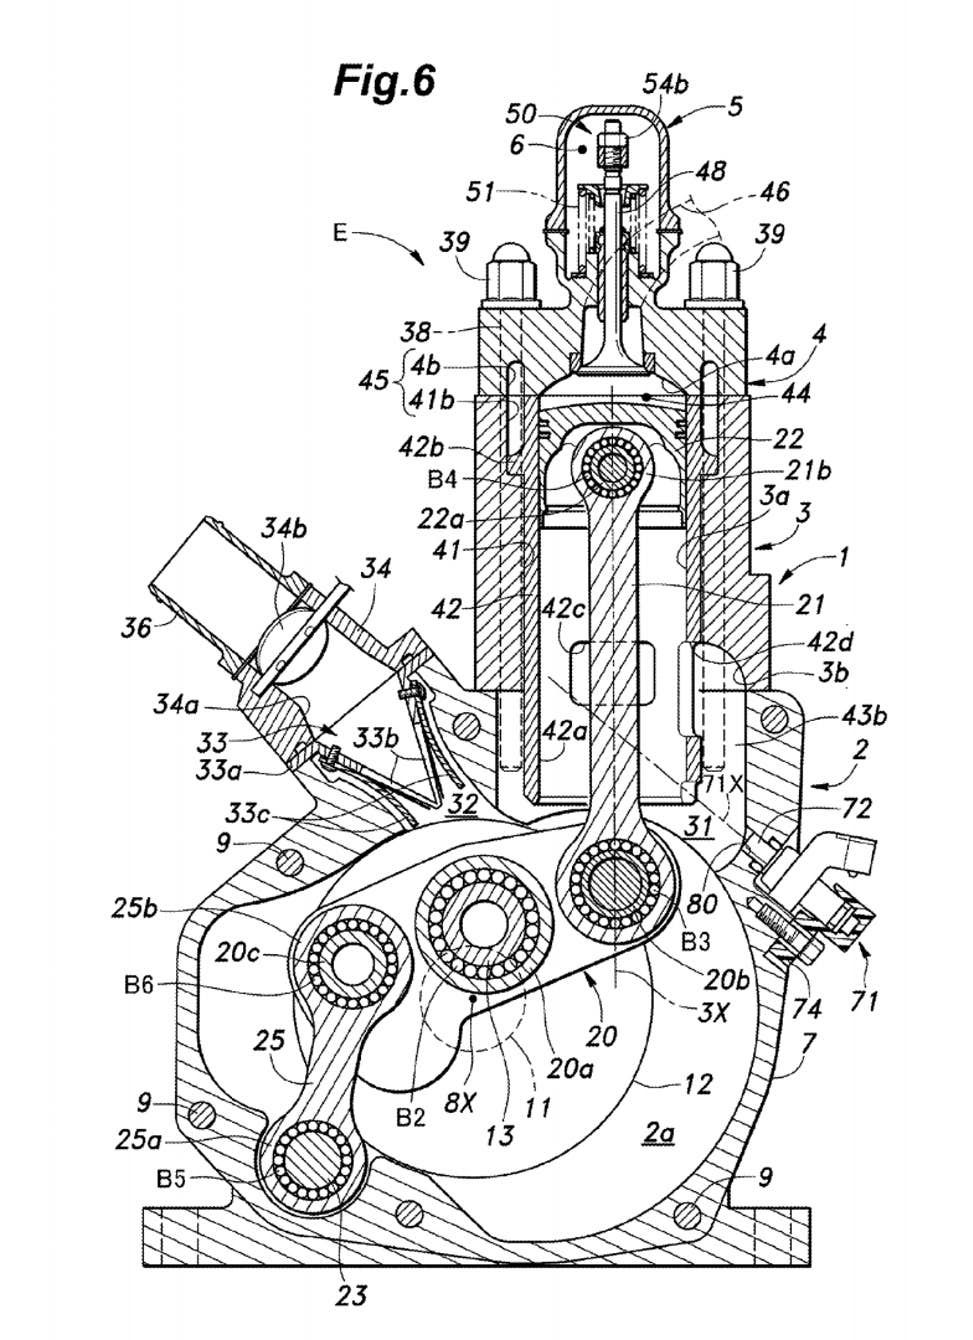 Dirt Bike Two Stroke Engine Diagram Wiring Data 2 Cycle Images Gallery